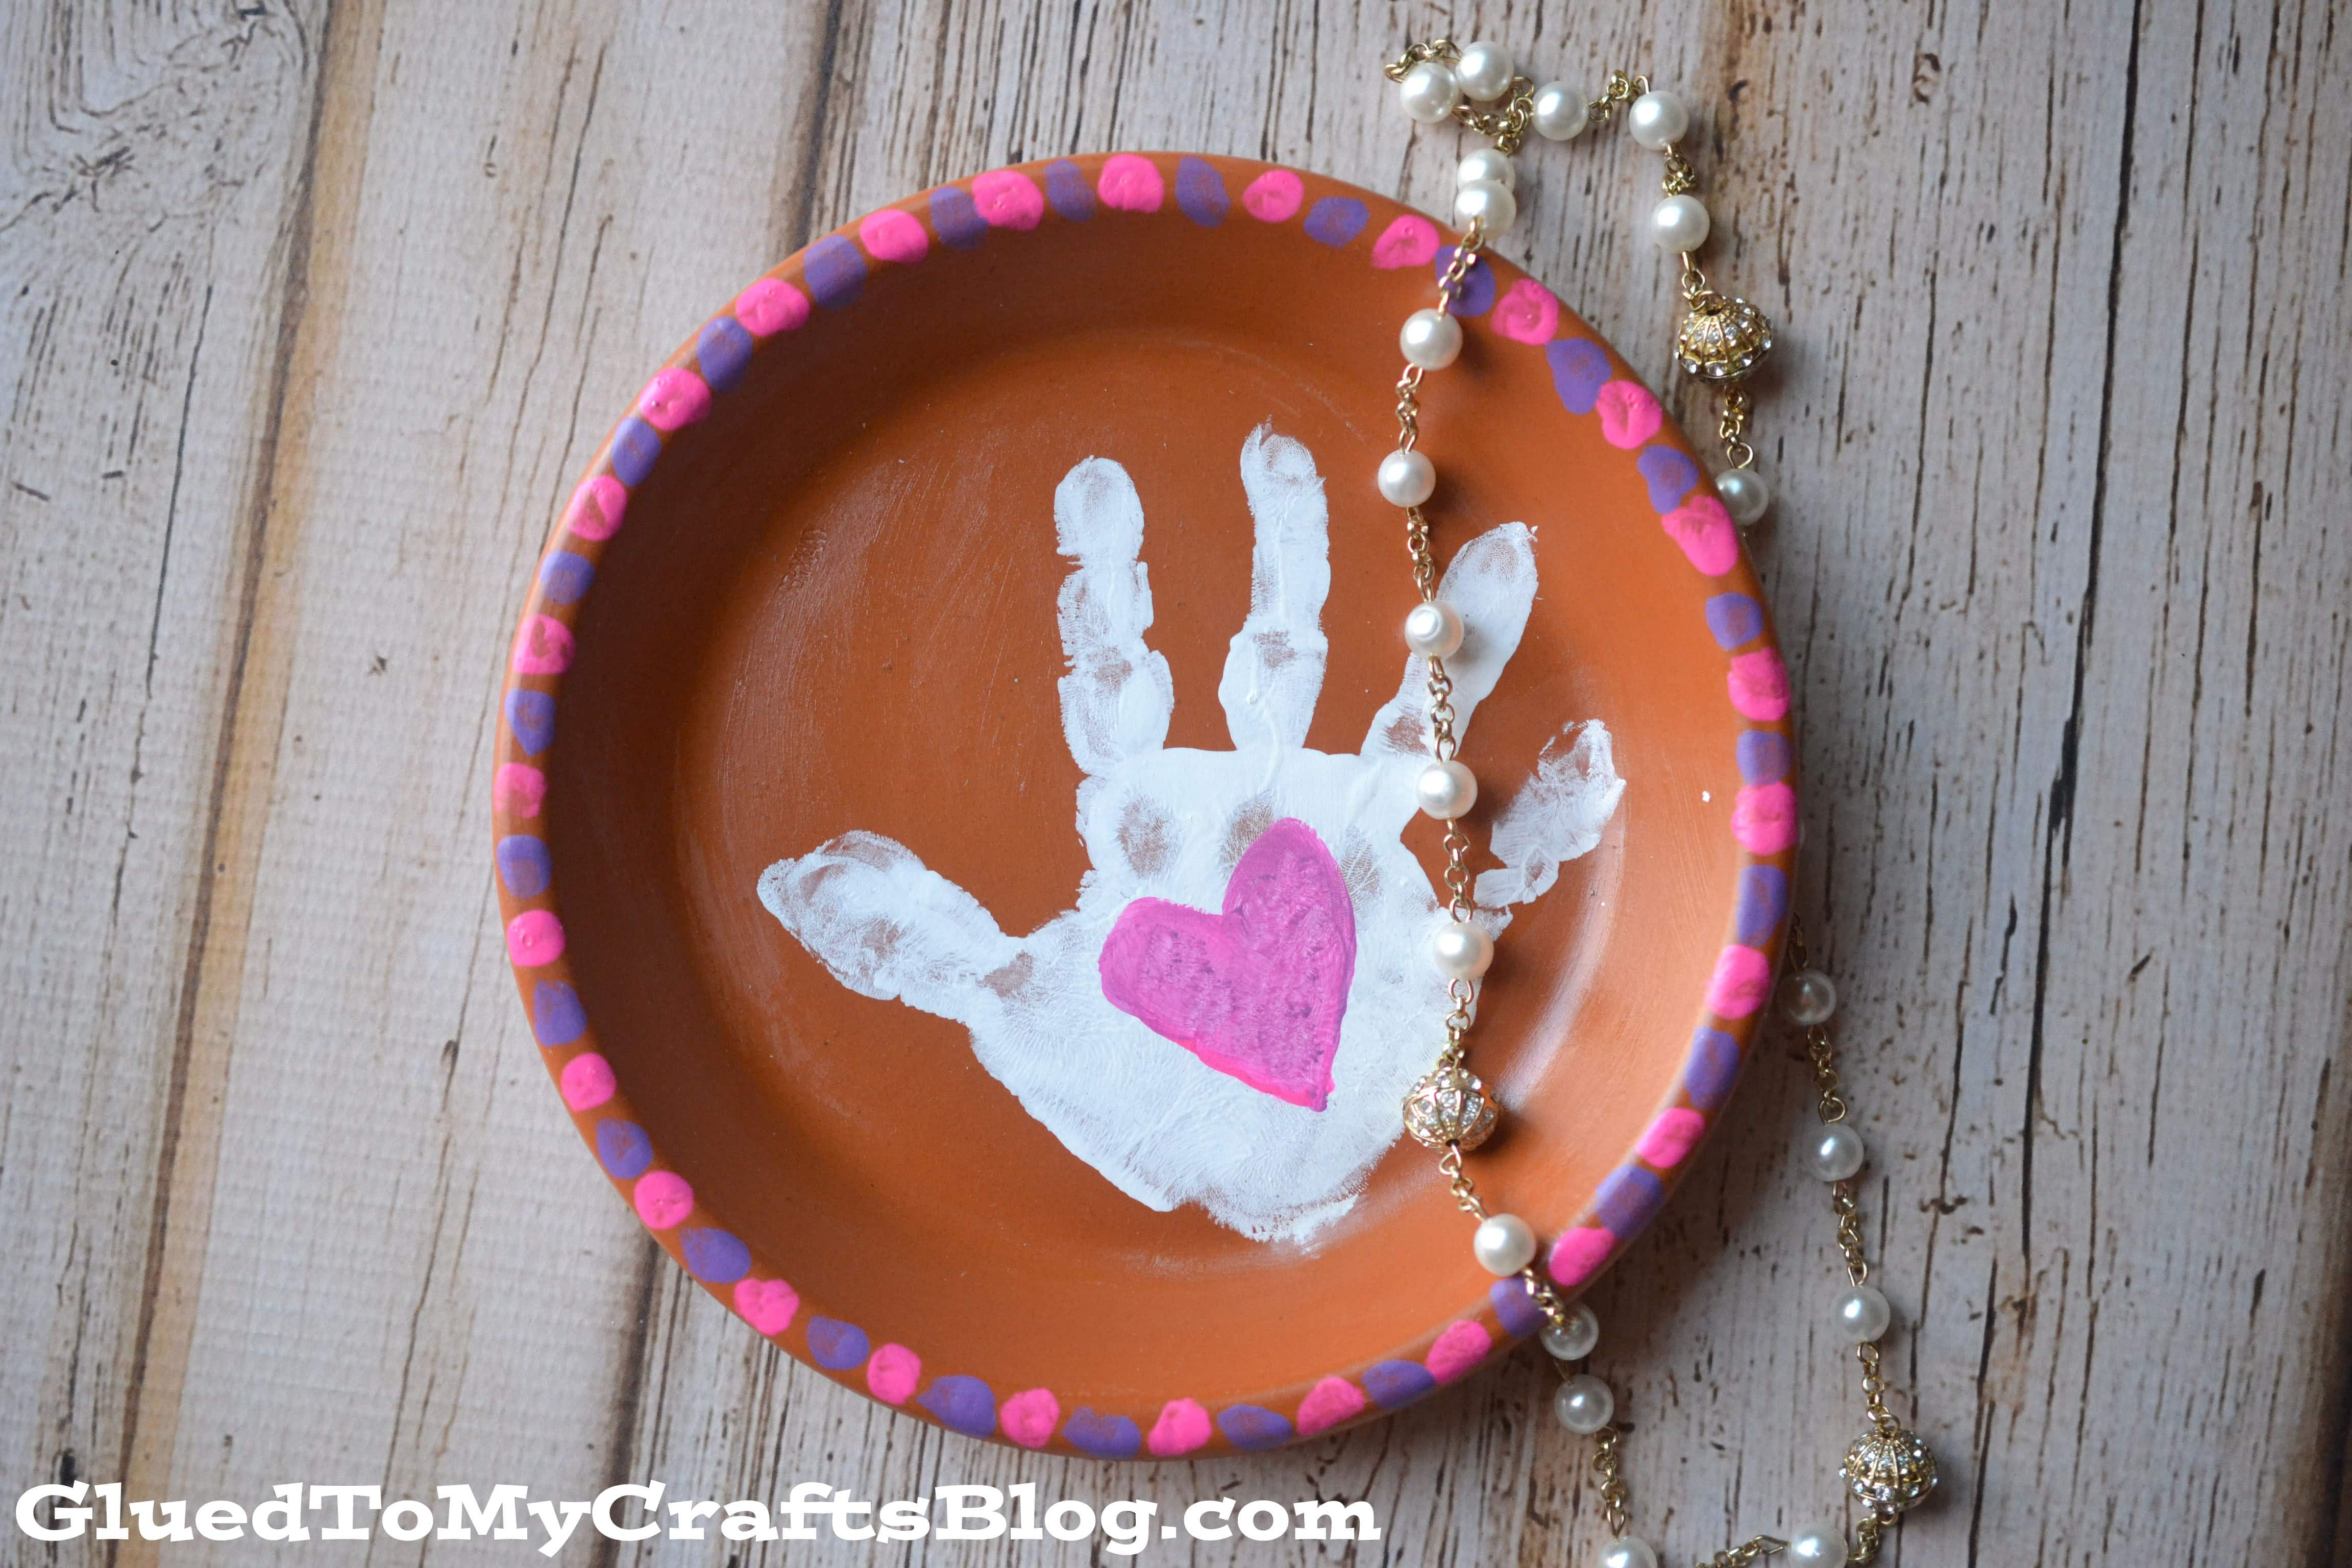 Handprint Plate Mother's Day gift that kids can make.